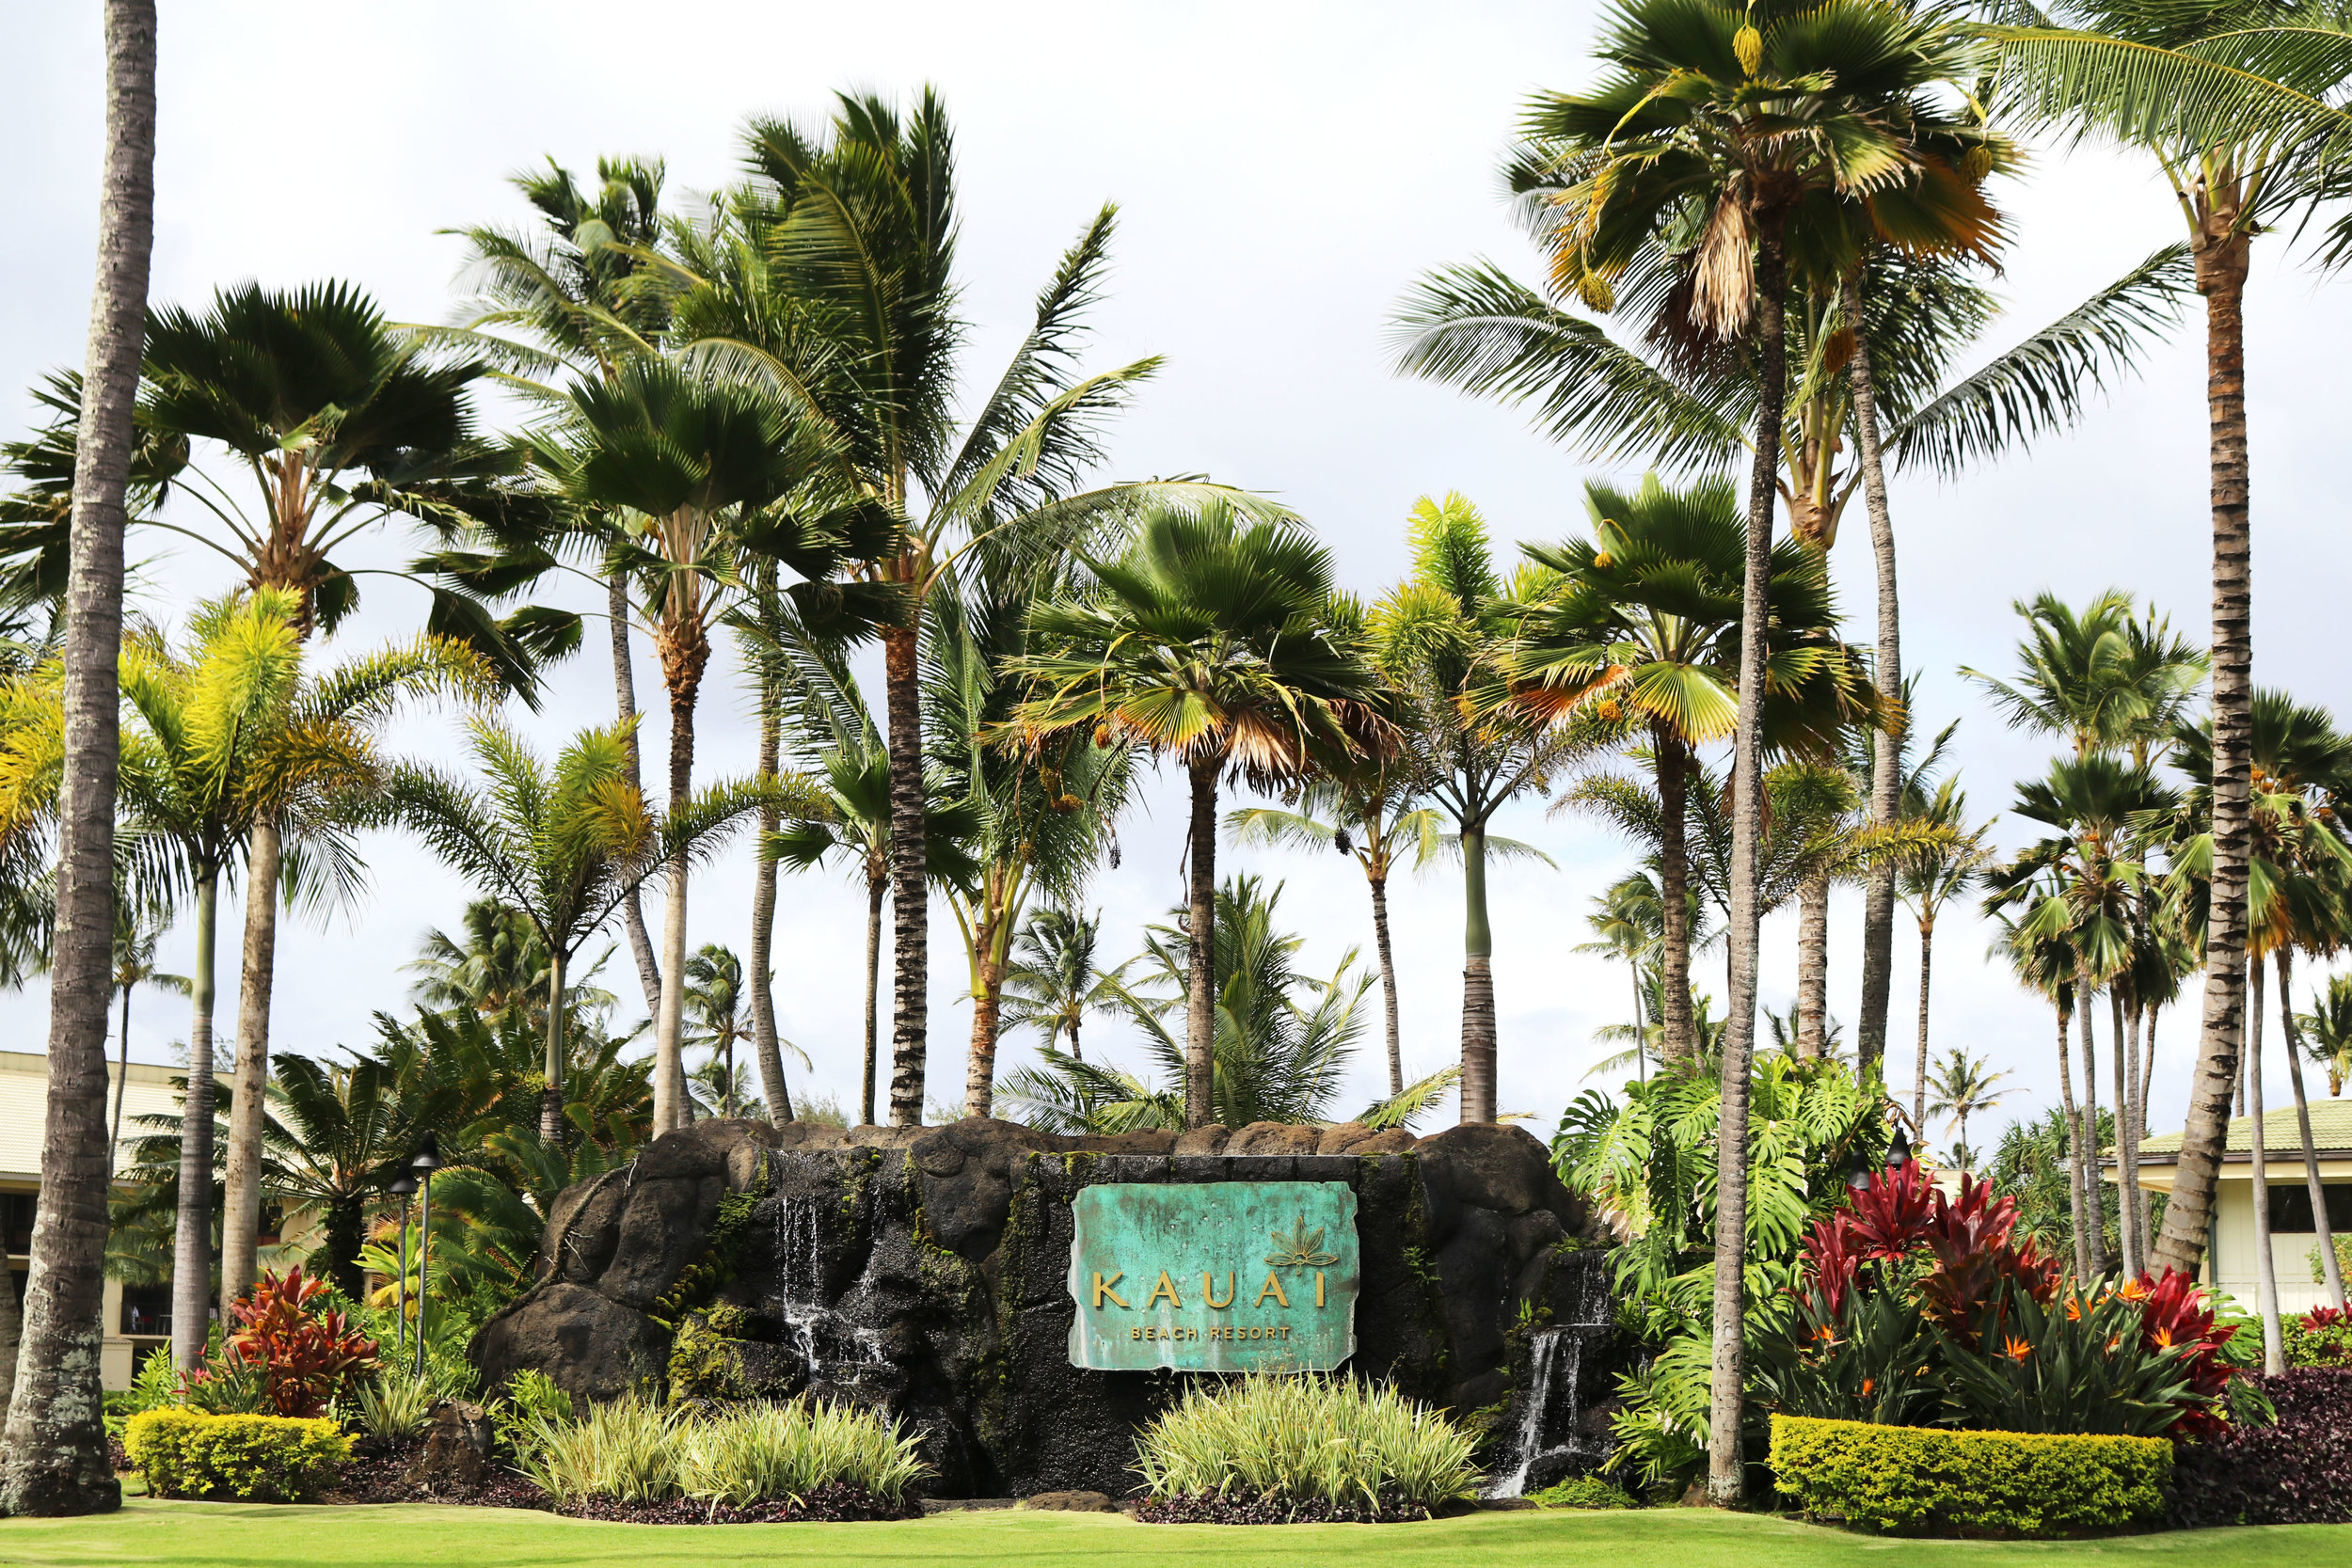 Front driveway entrance at Kauai Beach Resort